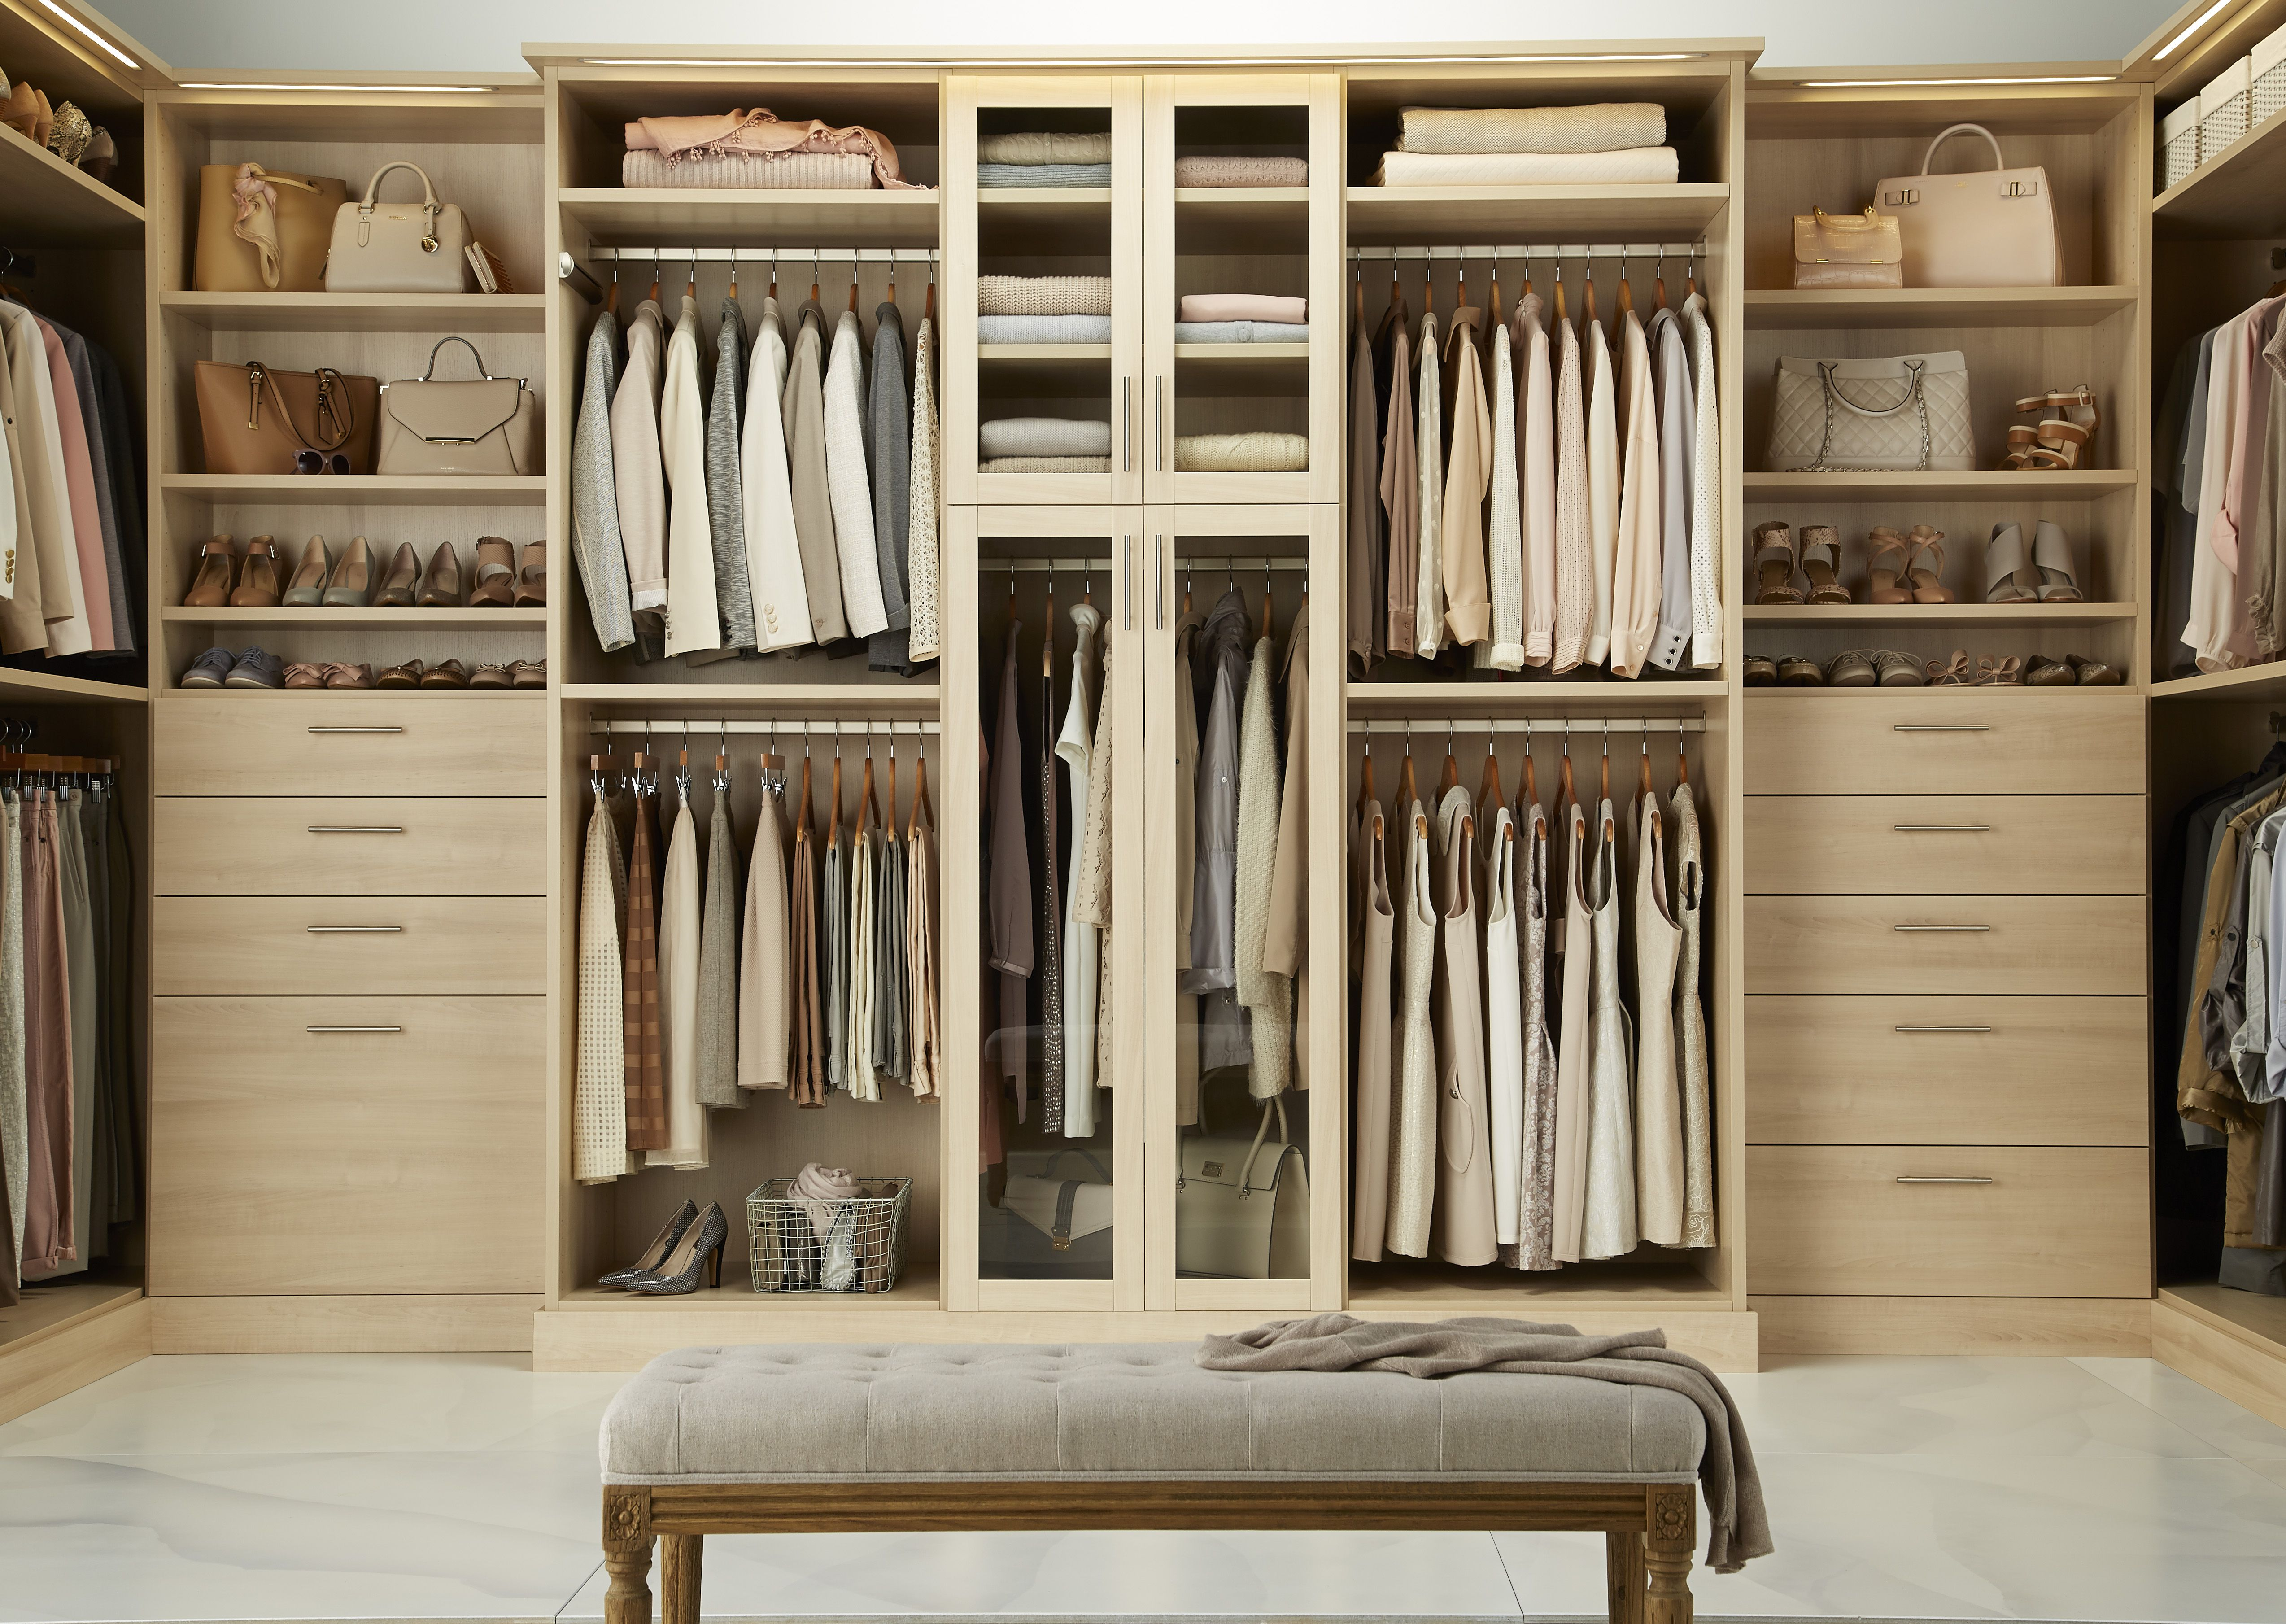 design customize and have your dream closet installed with tcs closets by the container store tcs closets are luxury custom walk in closets staged and